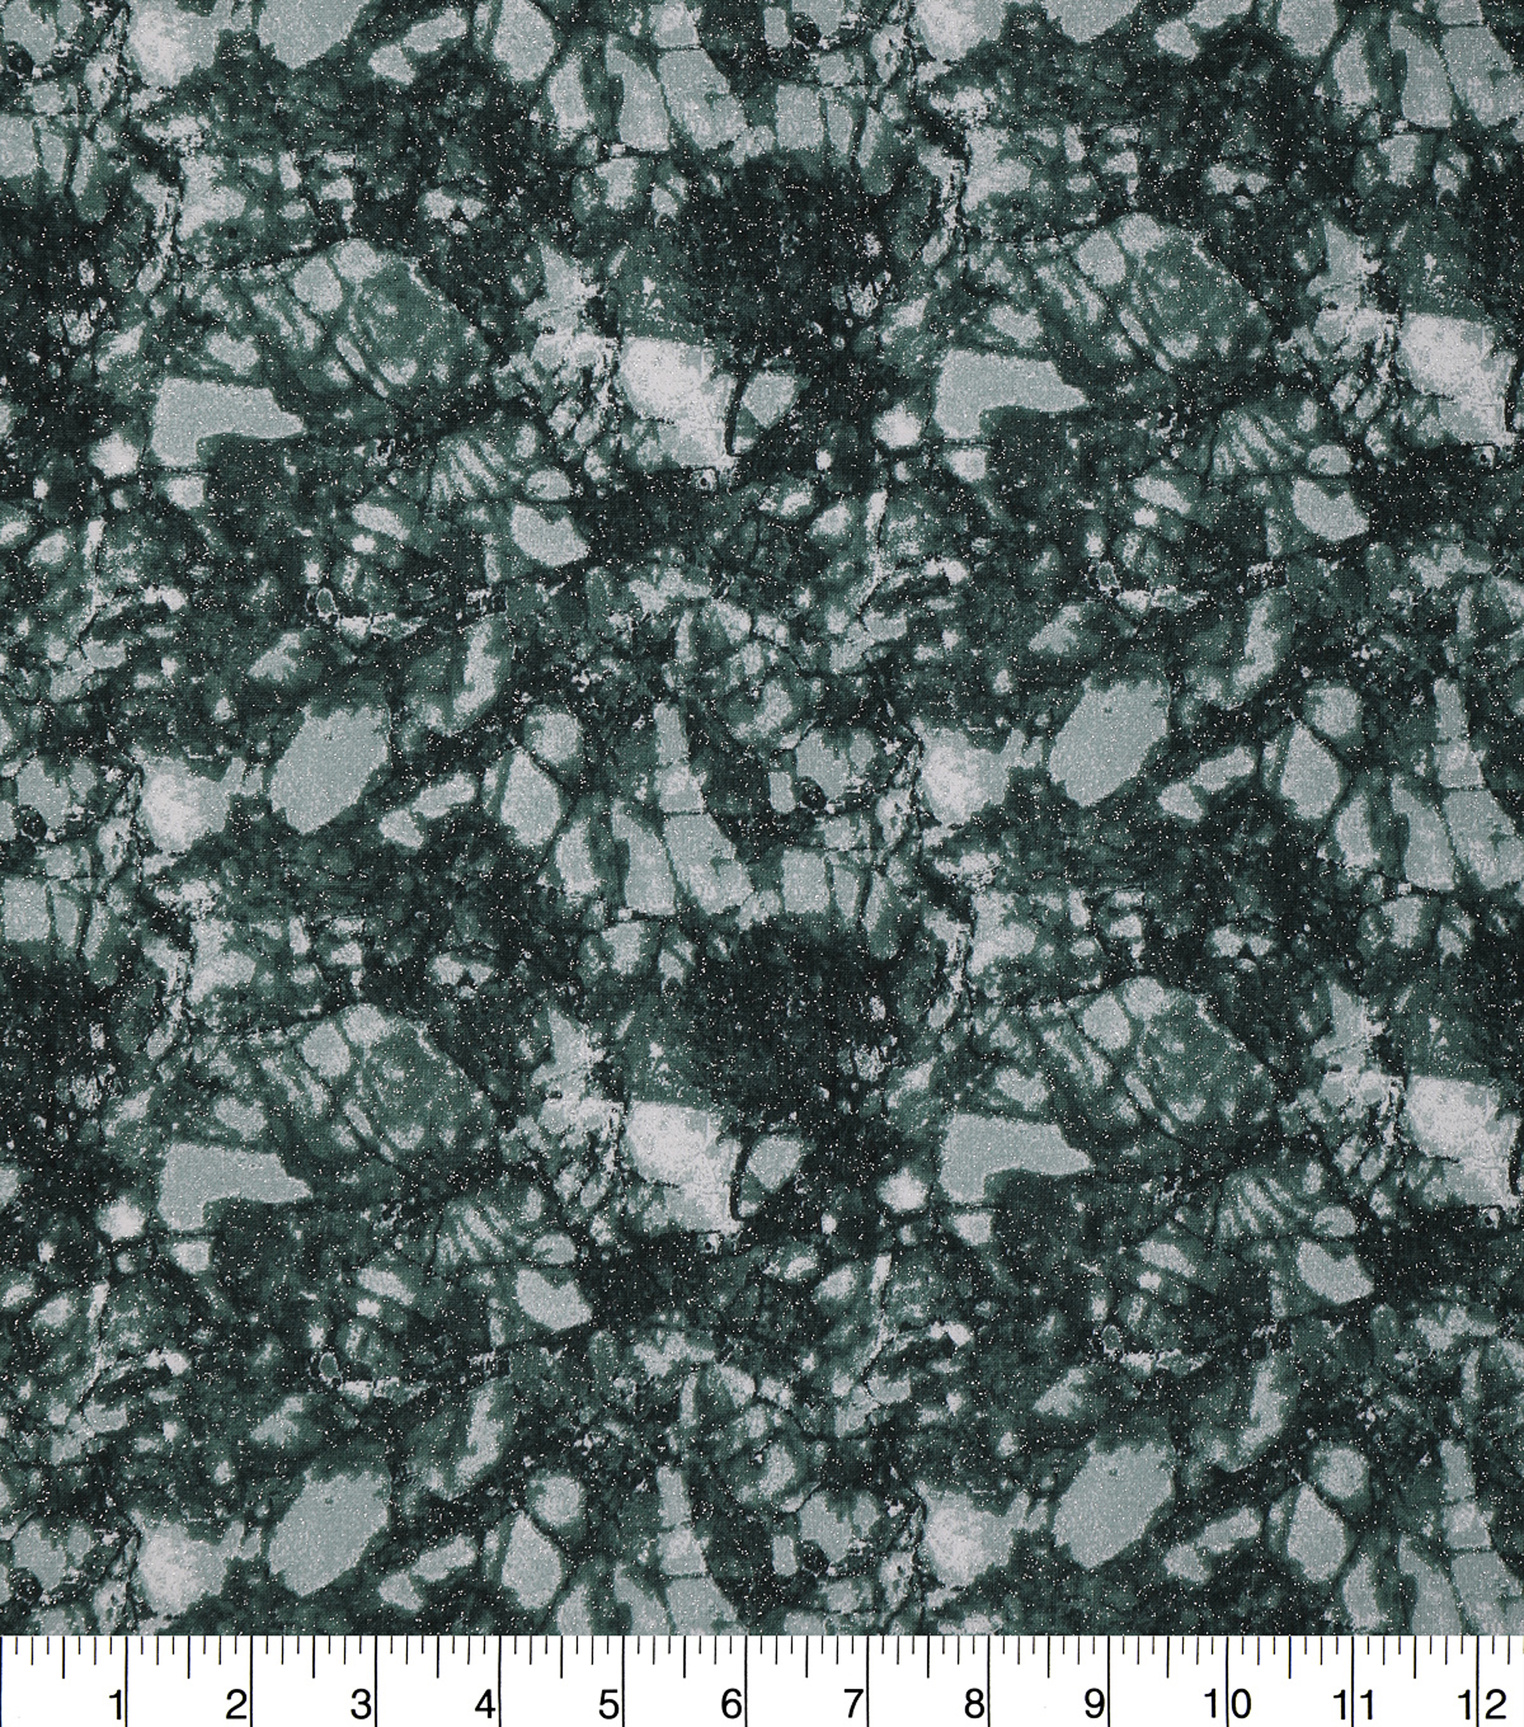 Keepsake Calico Glitter Cotton Fabric 43\u0027\u0027-Dark Green Snake Skin Crackle